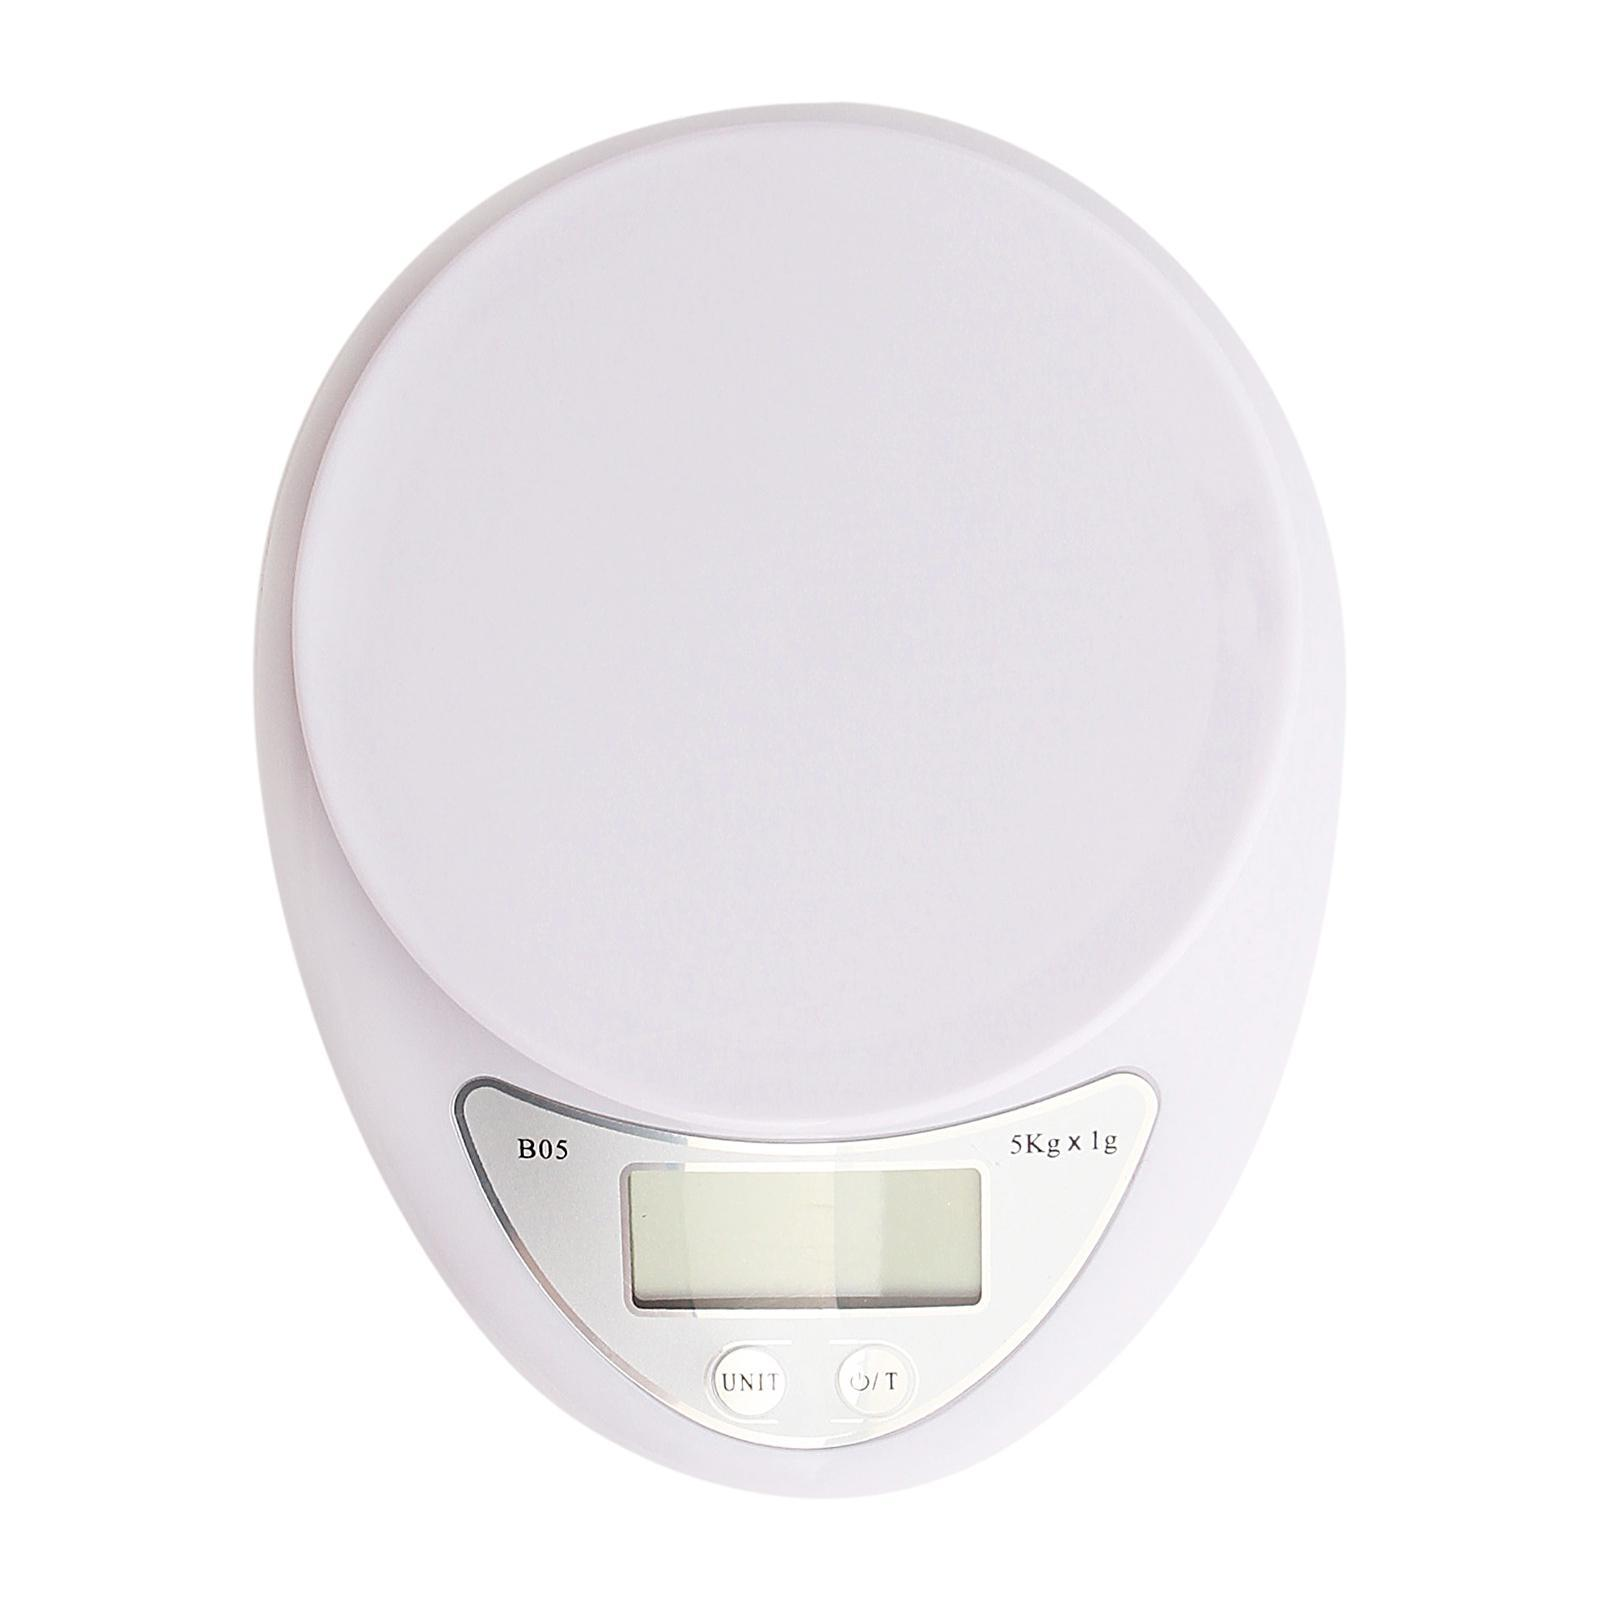 Mold Mart Digital Kitchen Scale 5Kg Electronic Weighing Machine